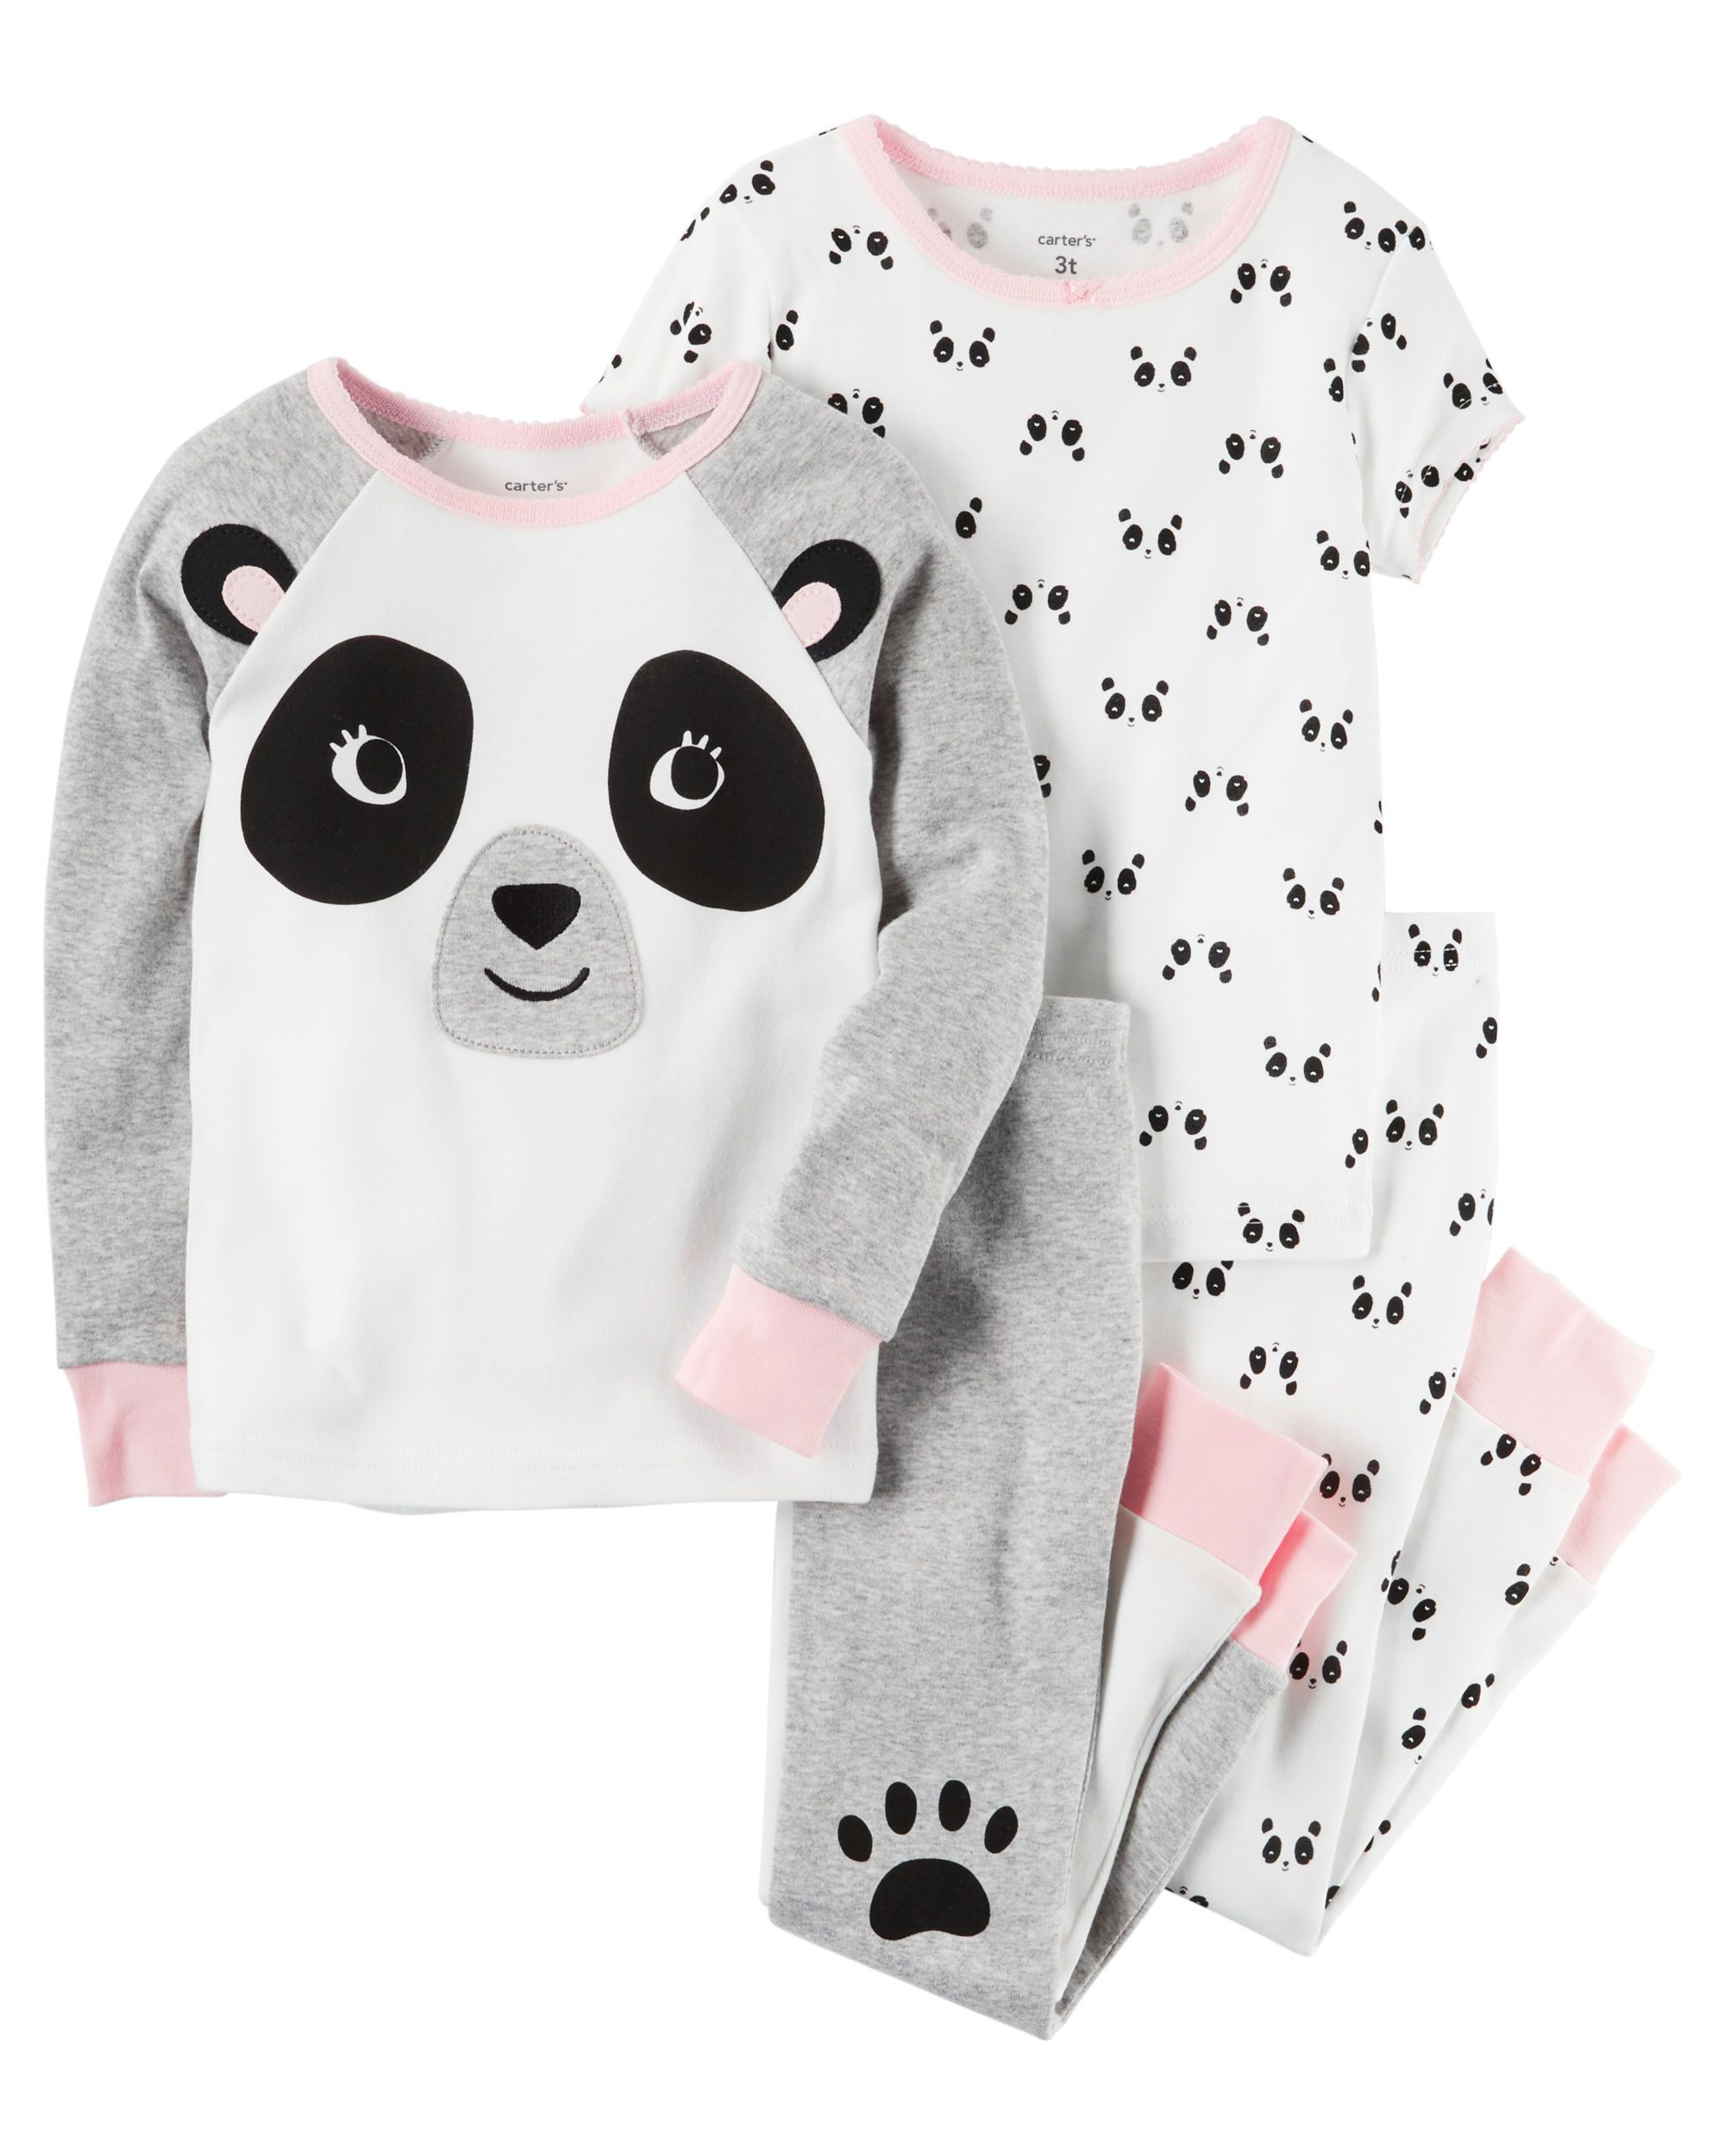 f8db03ff33c7 Baby Girl 4-Piece Snug Fit Cotton PJs from Carters.com. Shop ...